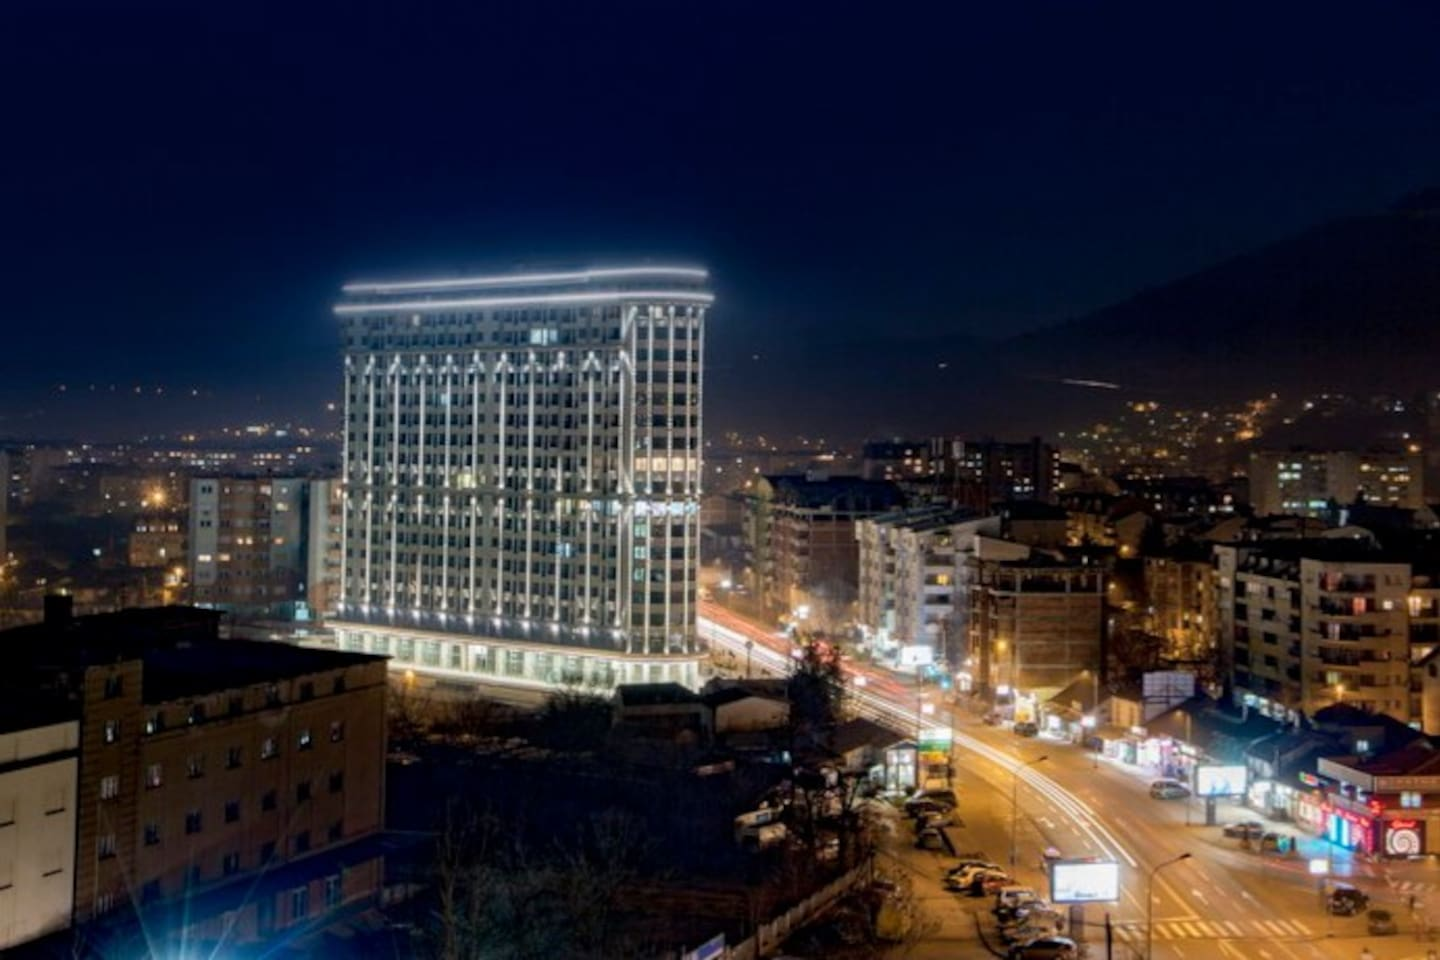 Outstanding  night view of the building, it's very very beautifull. Really is a star!